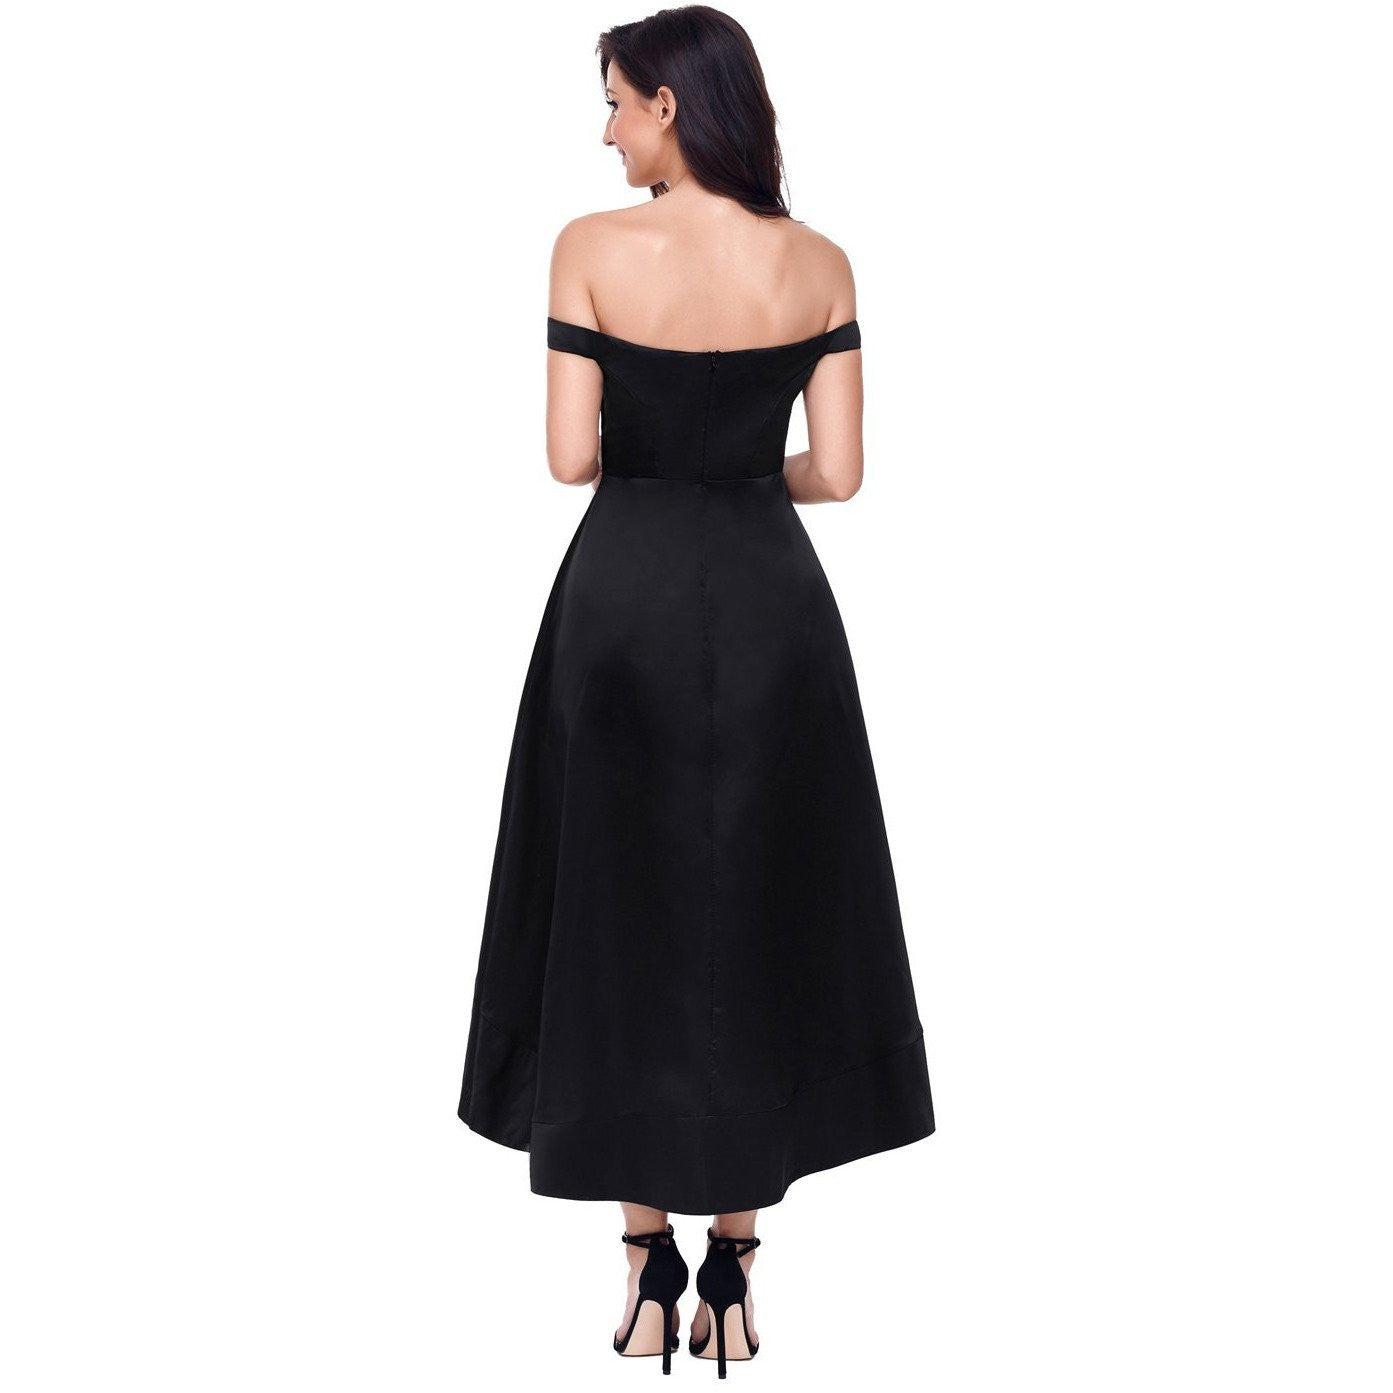 KELLIPS Black High-Shine High-Low Party Evening Dress - KELLIPS